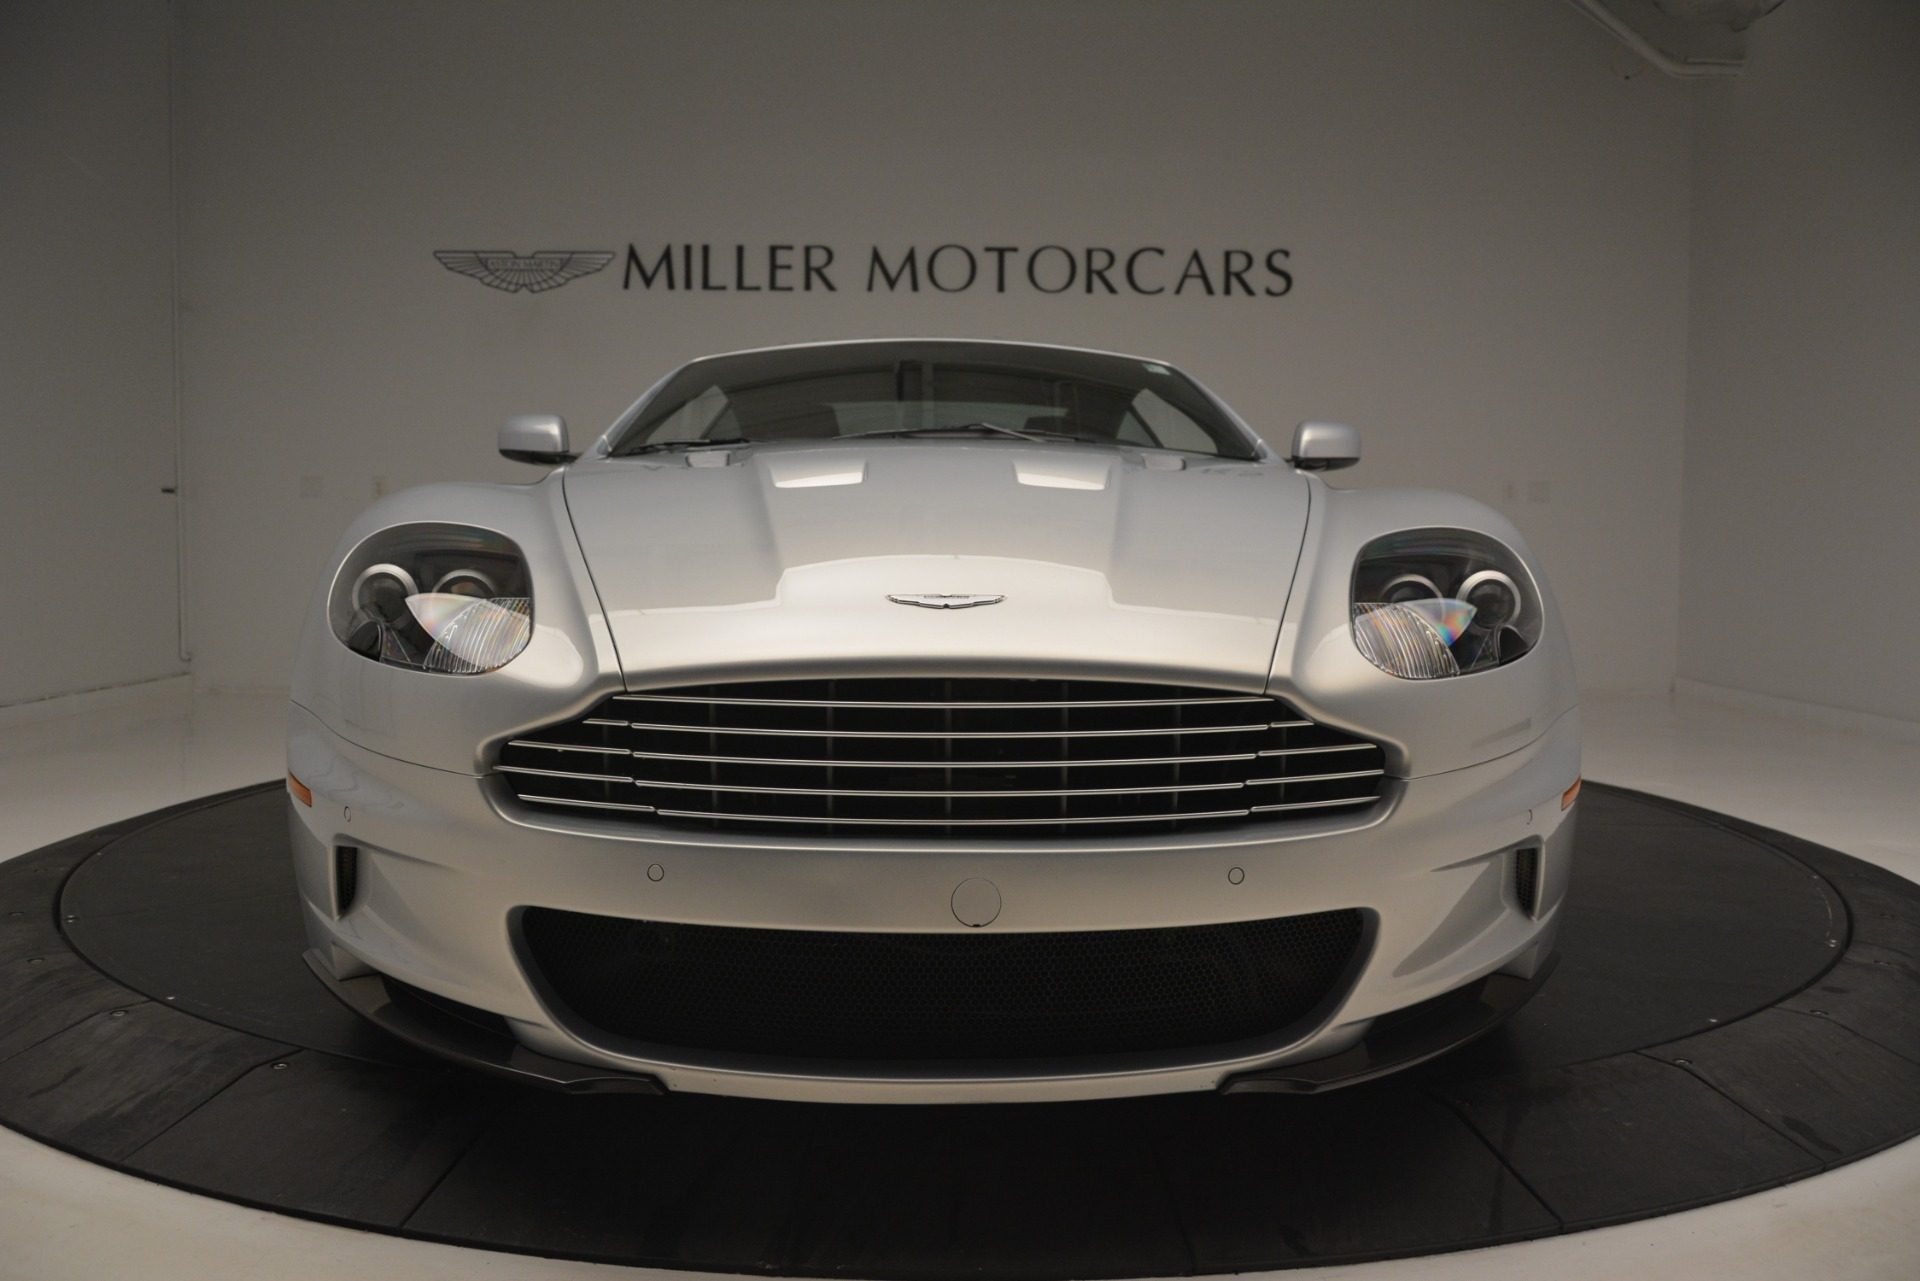 Used 2009 Aston Martin DBS Coupe For Sale In Greenwich, CT 3033_p13